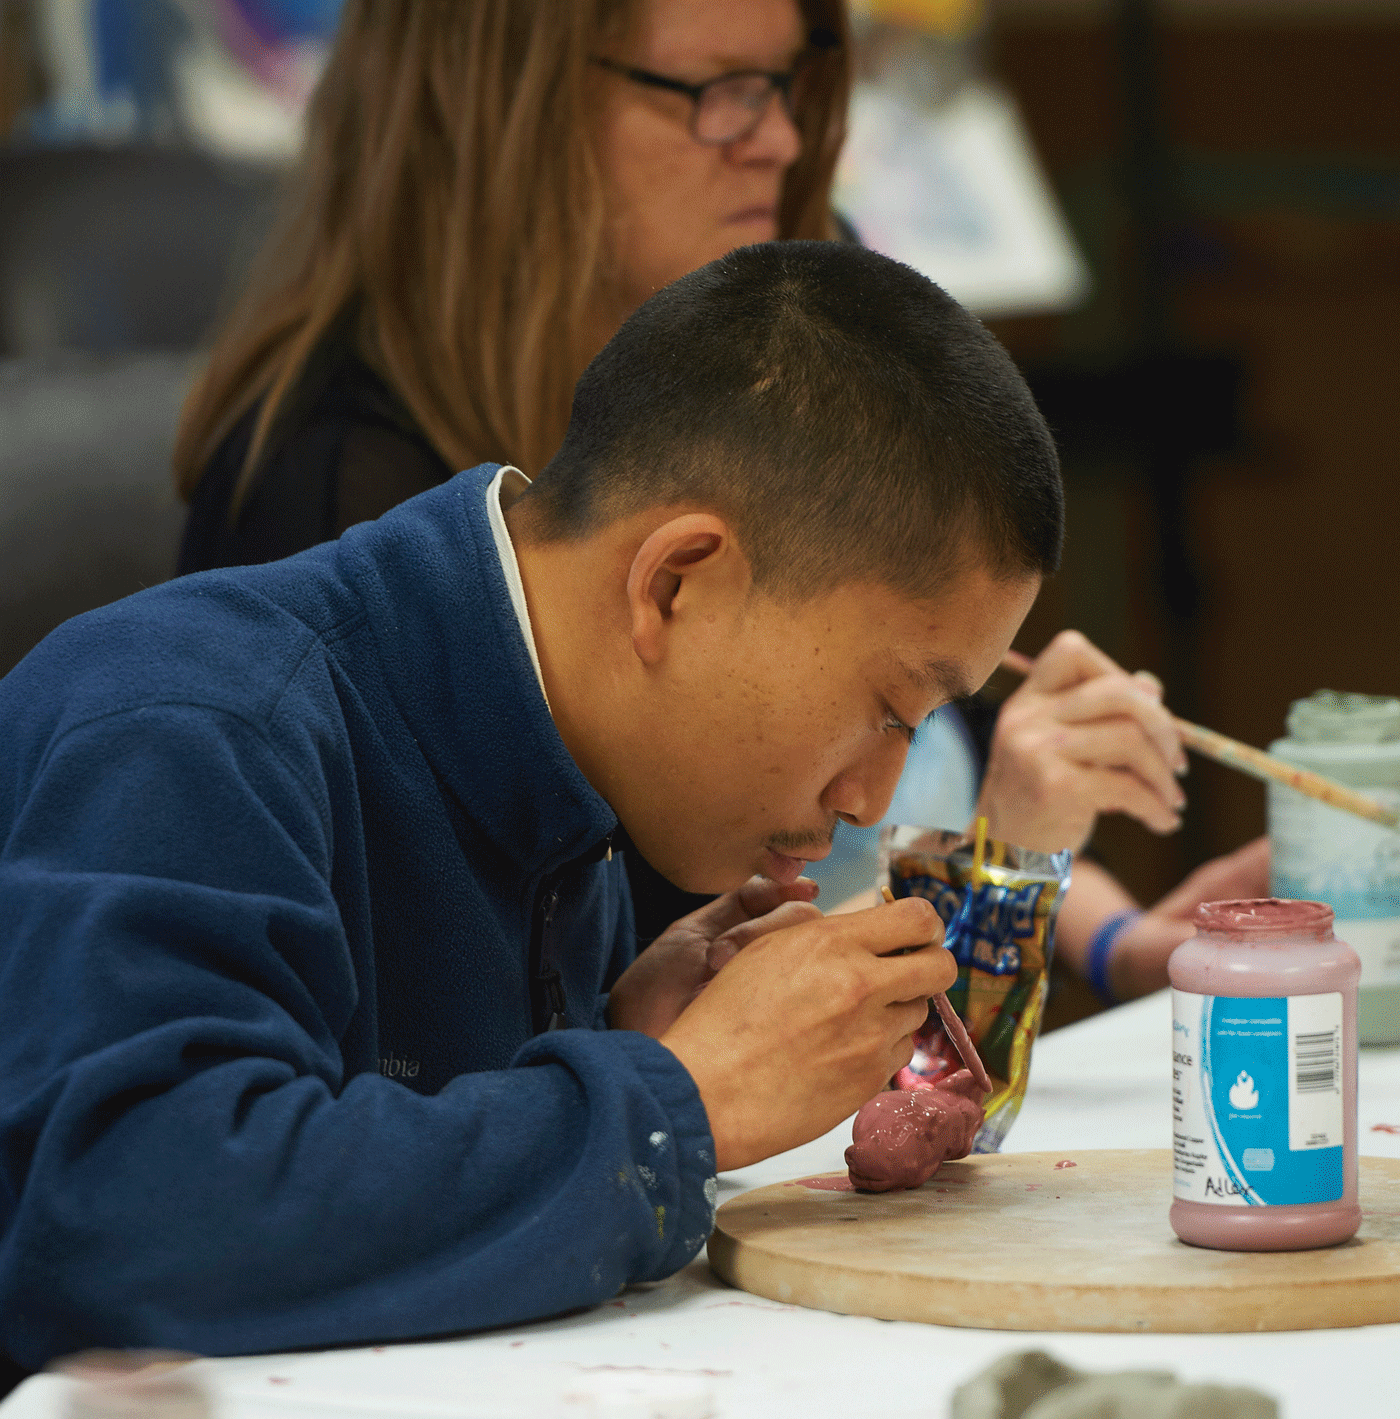 A person works on an art project, leaning in with concentration.